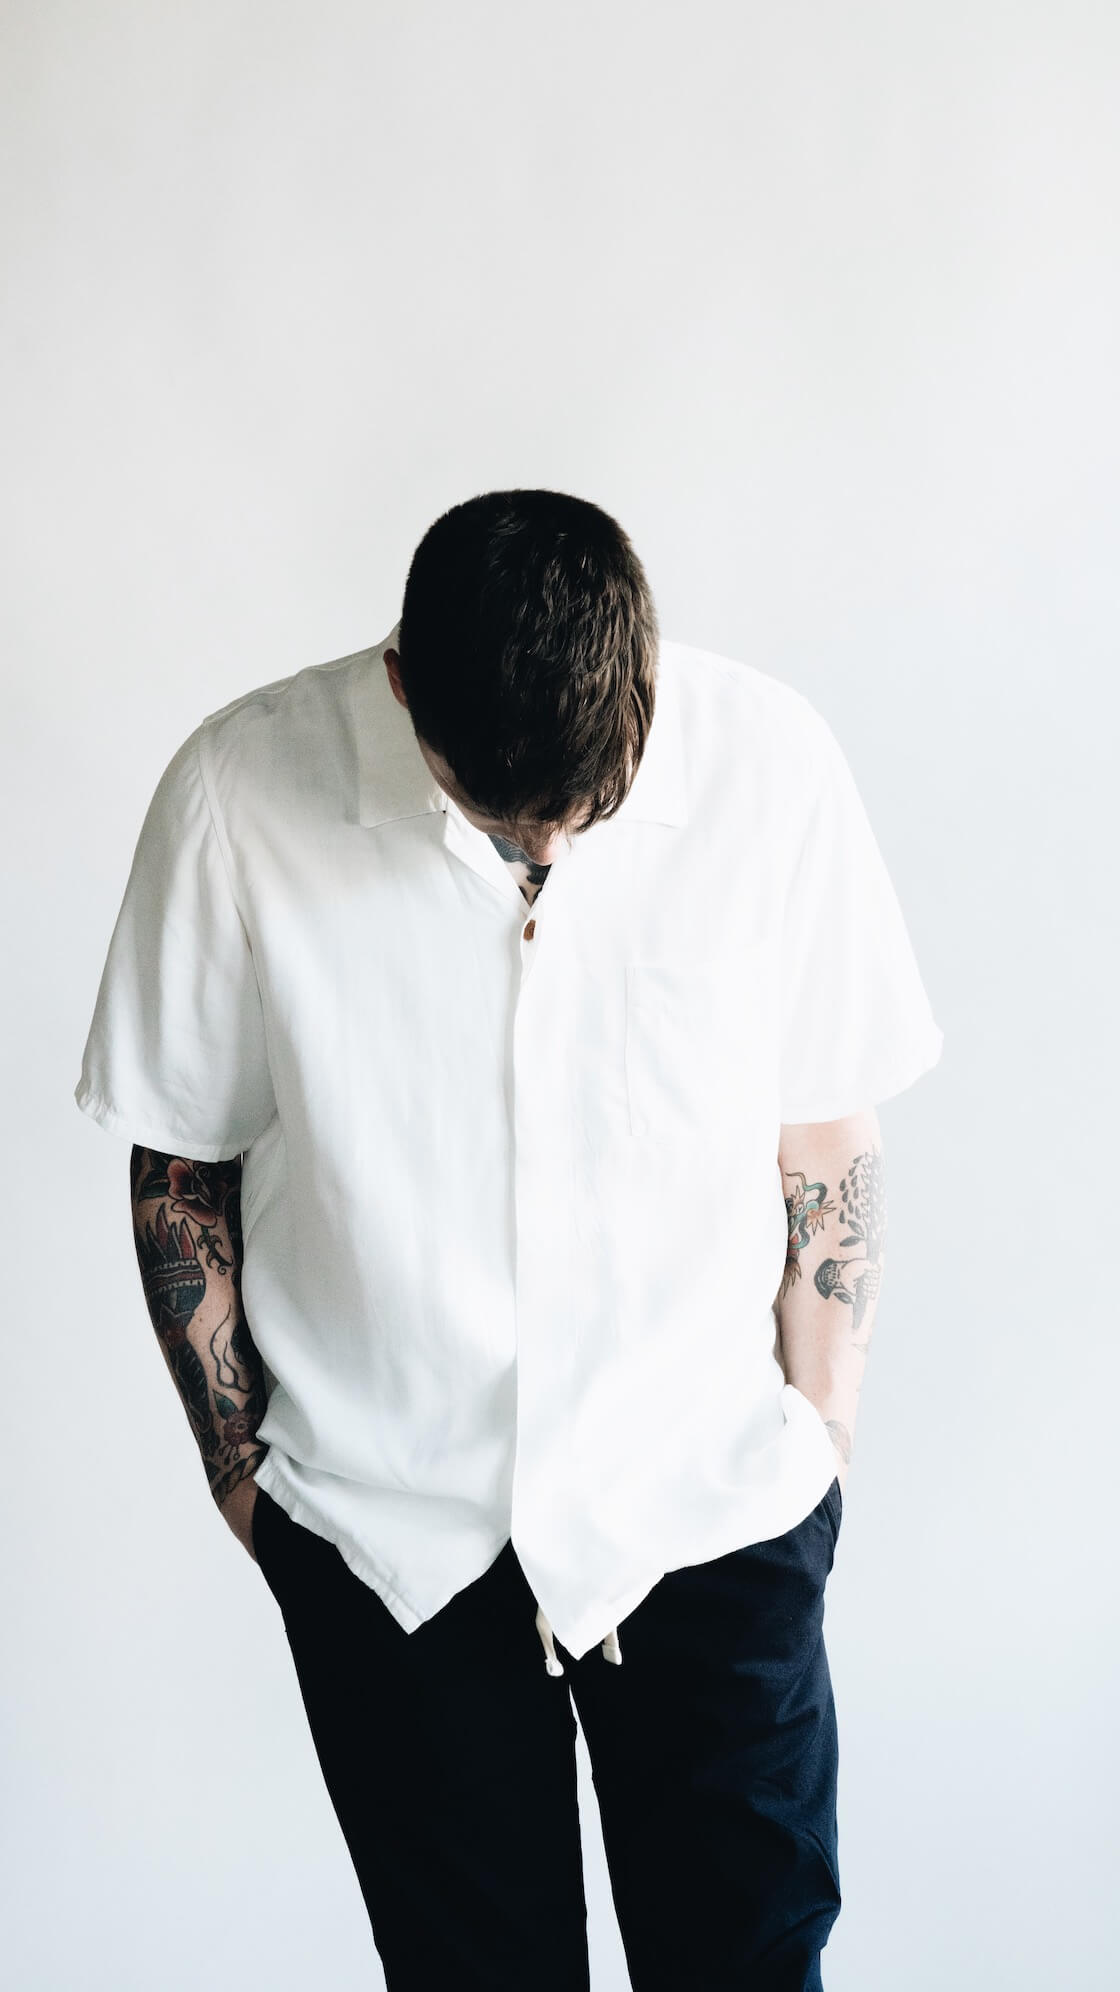 free edge shirt from visvim, gym pants from beams plus on body